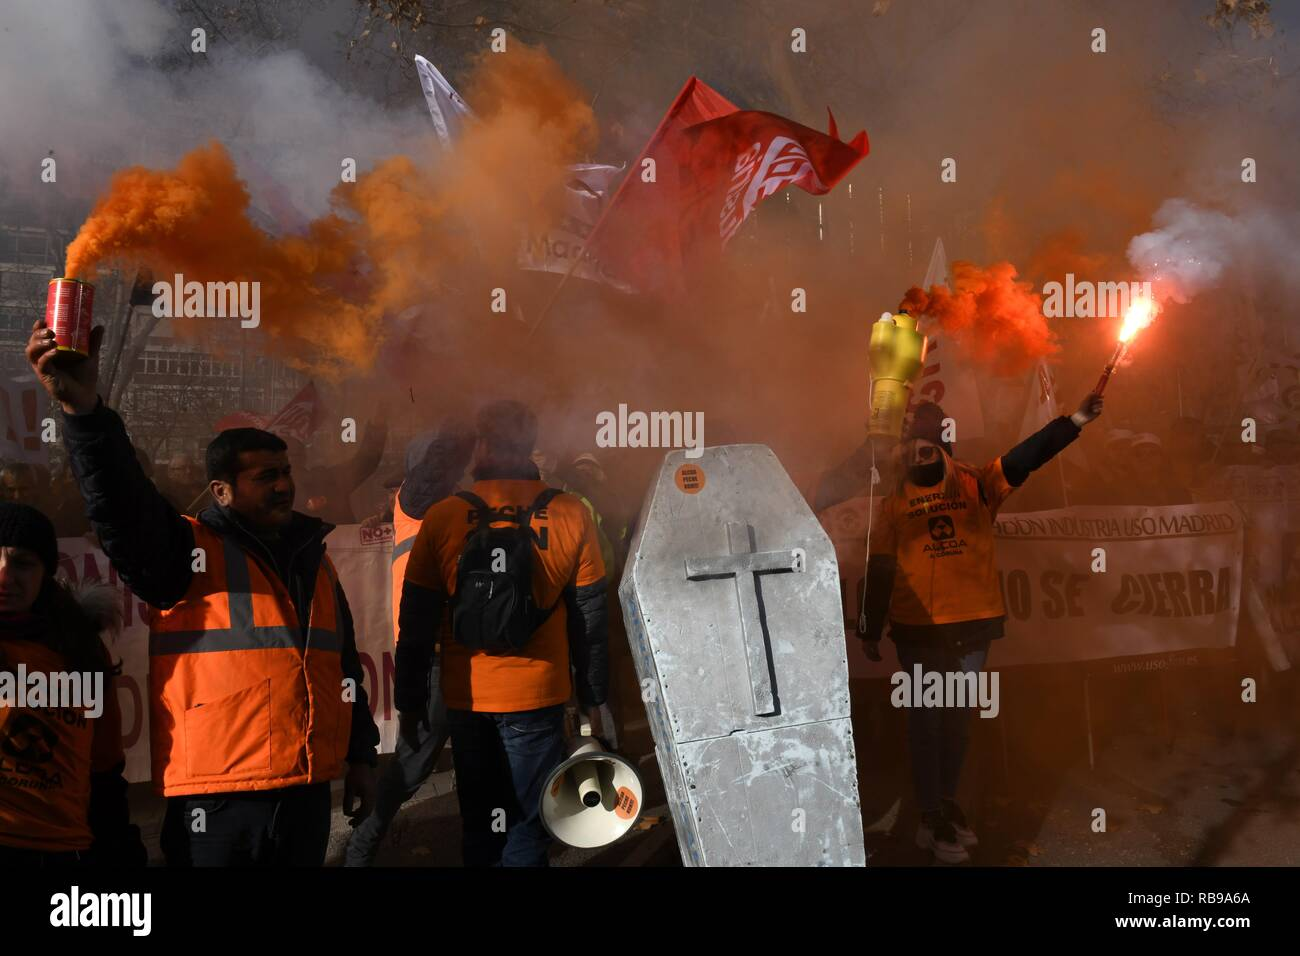 Madrid, Spain. 08th Jan, 2019. Spanish workers of US aluminum producer Alcoa's plants in Aviles and A Coruna lite flares as they demonstrate against the planned closing of the facilities in front of the Ministry of Industry headquarters in Madrid, Spain, 08 January 2019. Alcoa announced the definite closing of its fabrics in Aviles and A Coruna affecting a total of 686 workers. Credit: Víctor Lerena/EFE/Alamy Live News - Stock Image